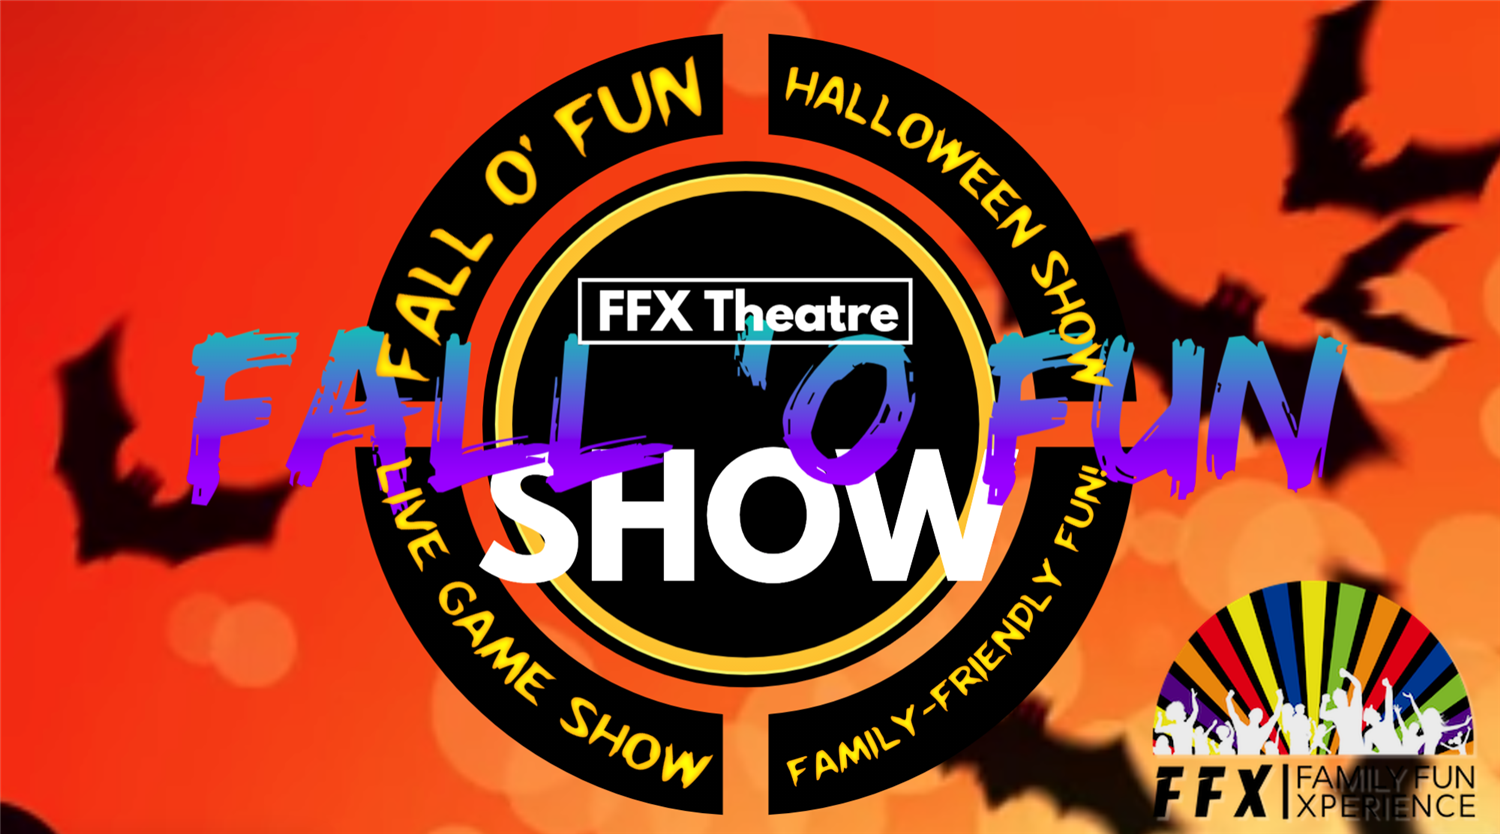 Fall'o'Fun Halloween Game Show Sensational and slightly spooky family fun! on Oct 29, 19:00@FFX Theatre - Buy tickets and Get information on Family Fun Xperience tickets.ffxshow.org